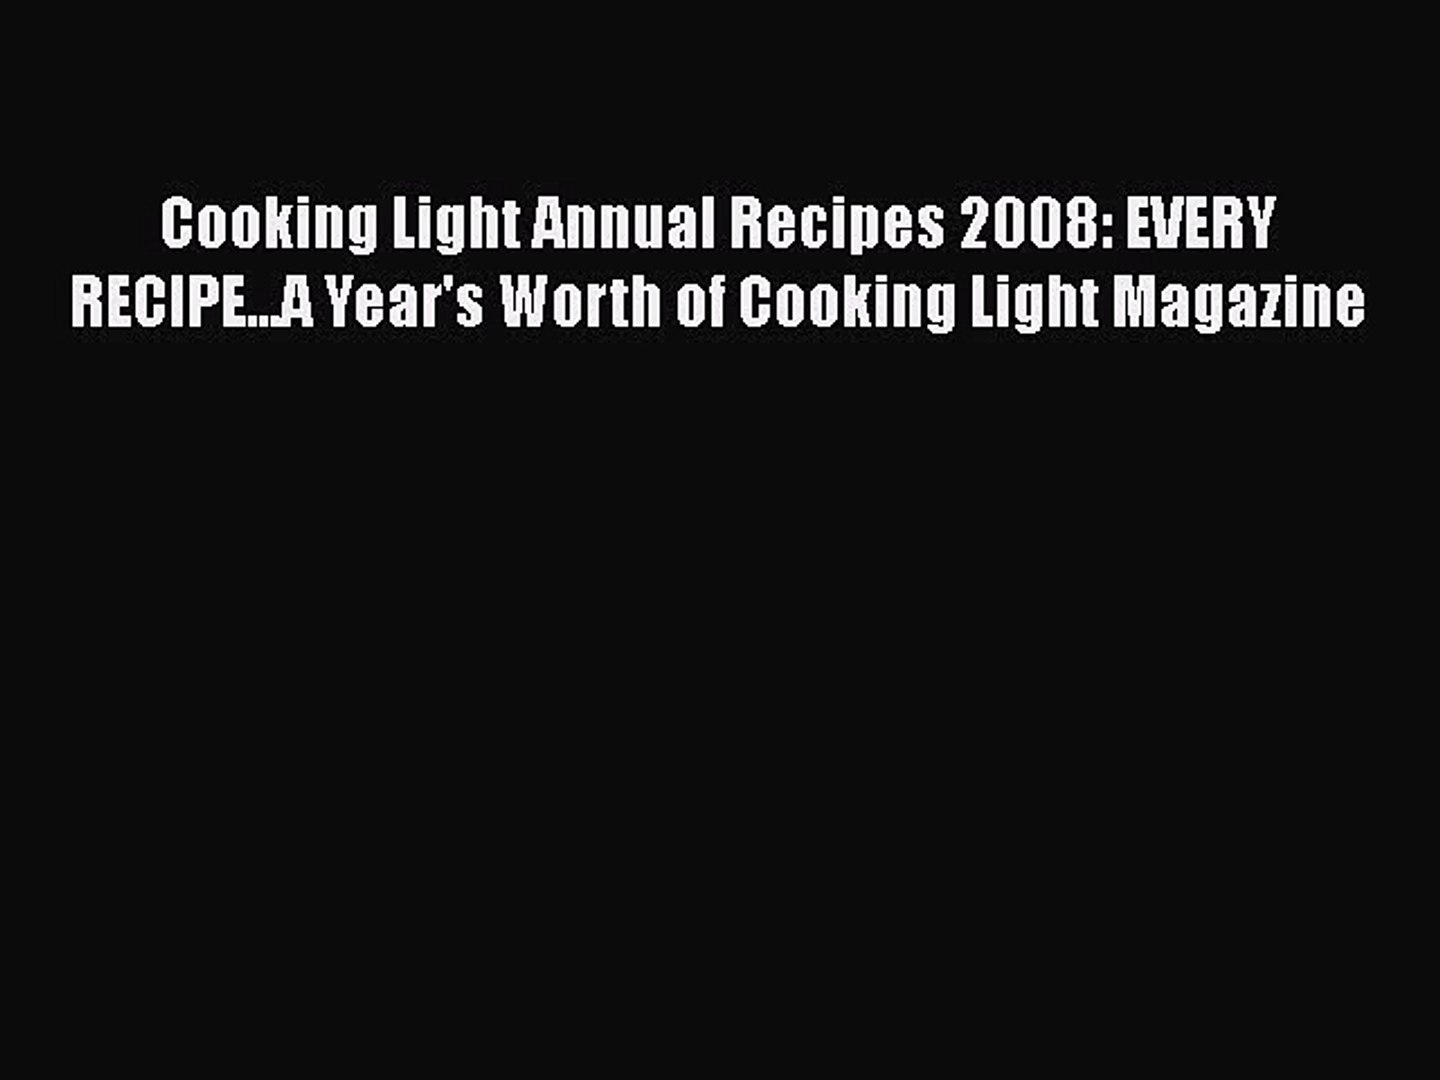 Read Cooking Light Annual Recipes 2008: EVERY RECIPE...A Year's Worth of Cooking Light Magazine